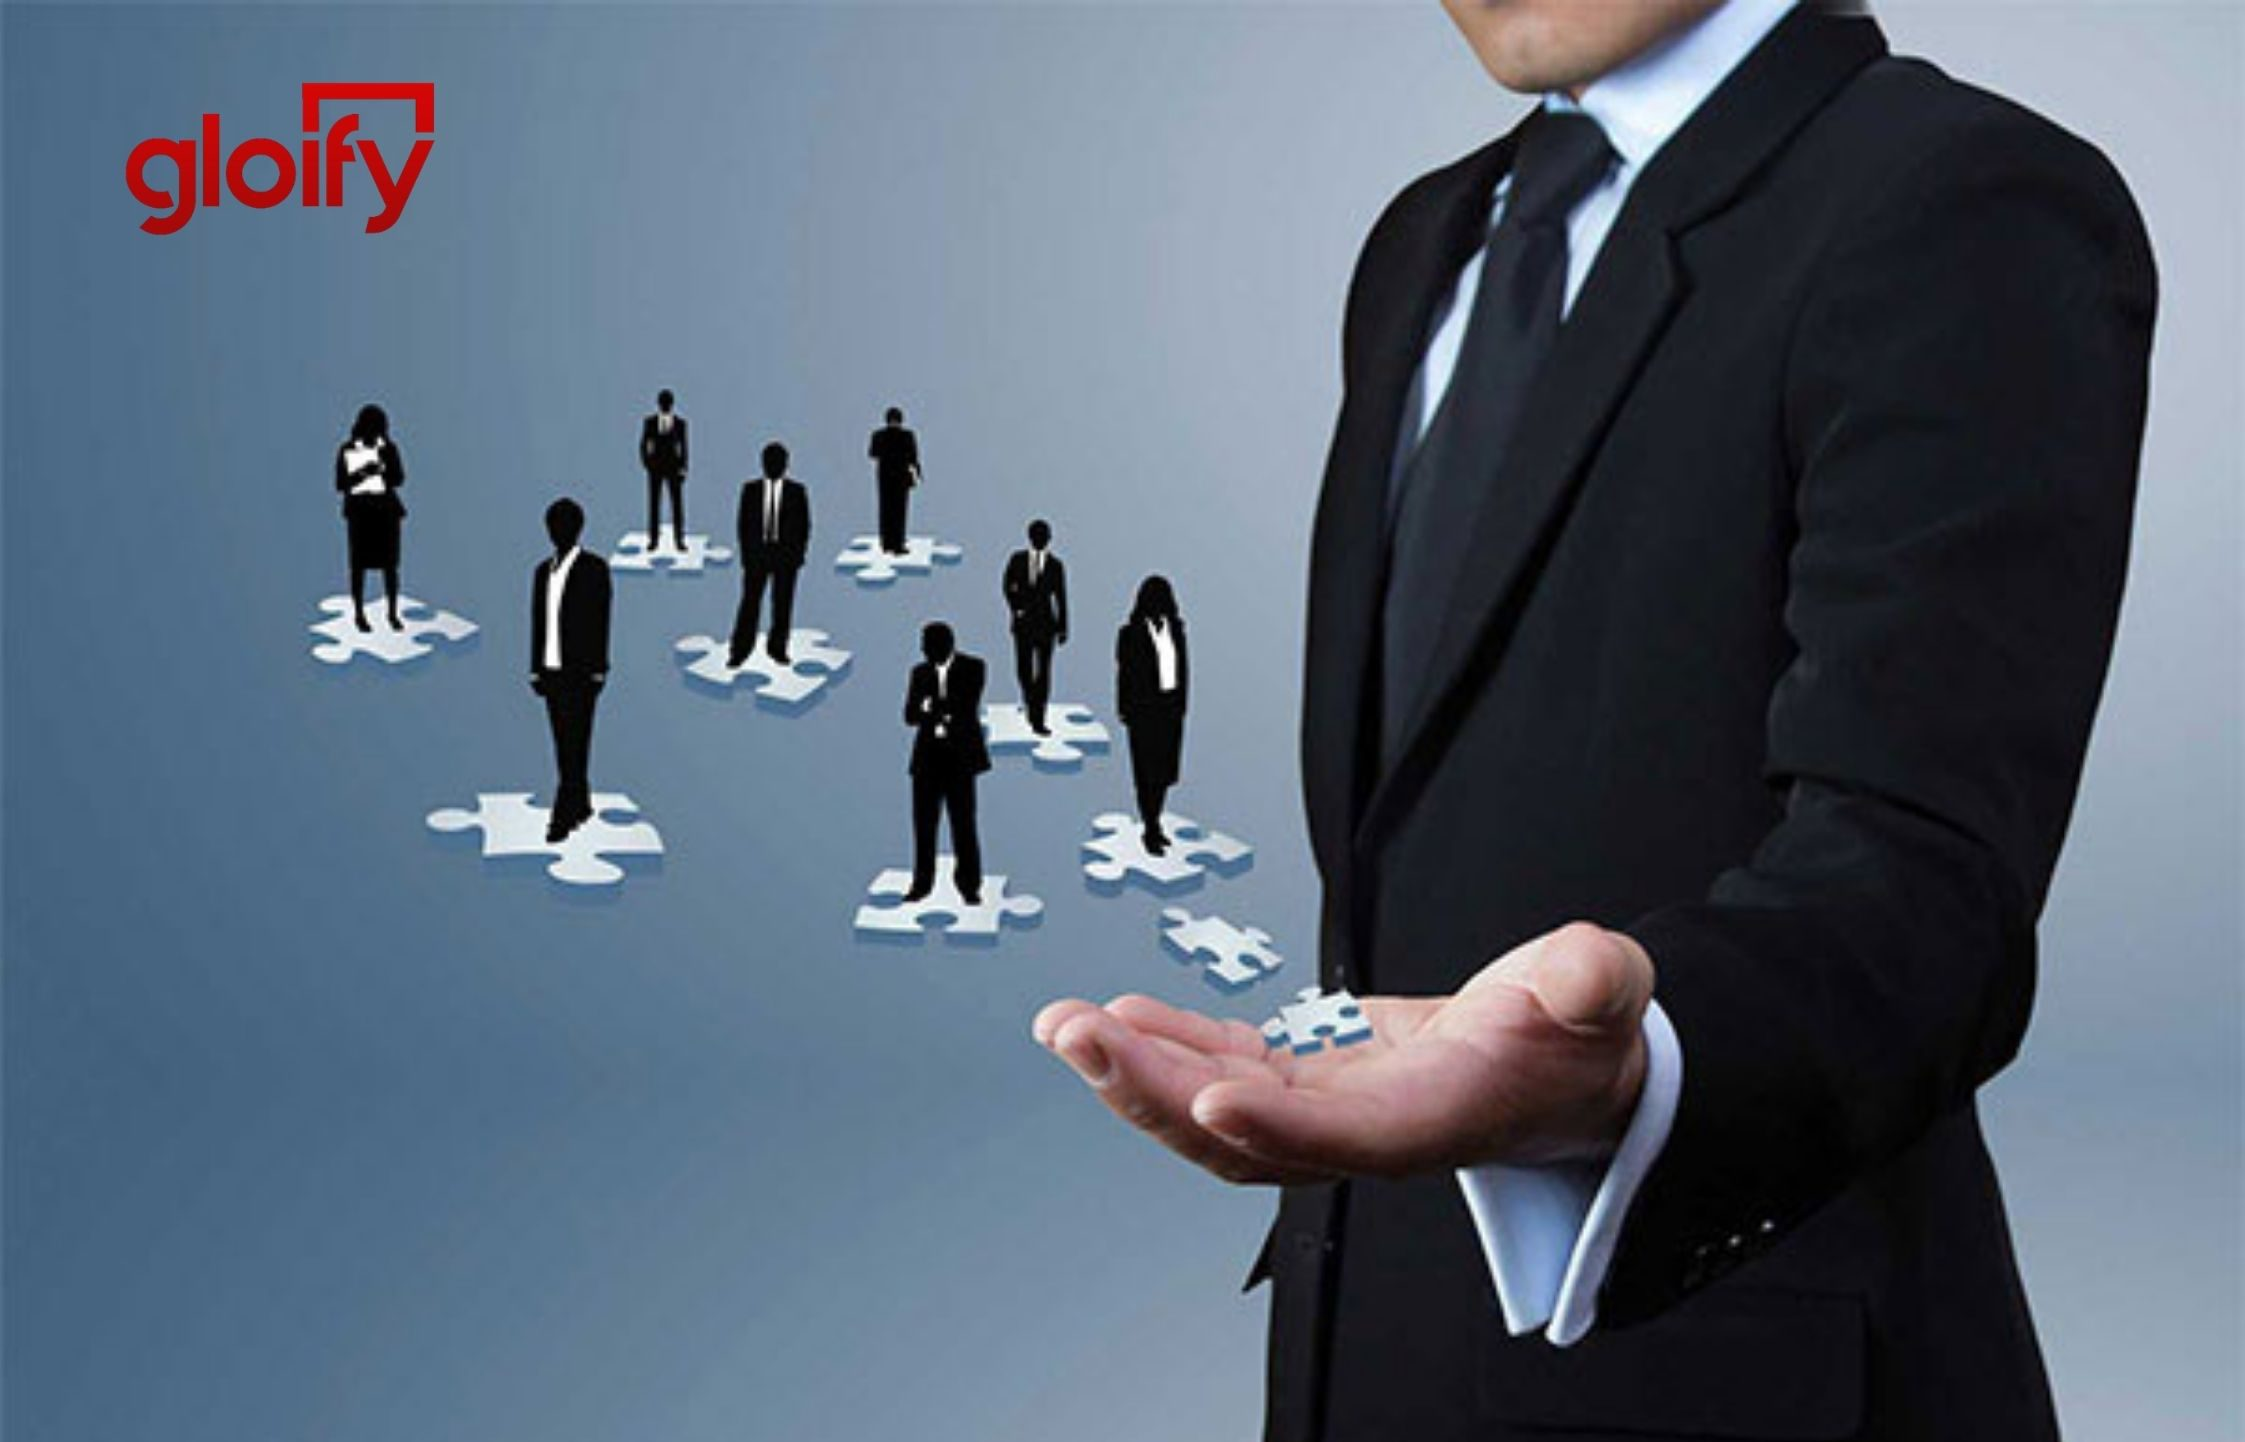 gloify staffing solution